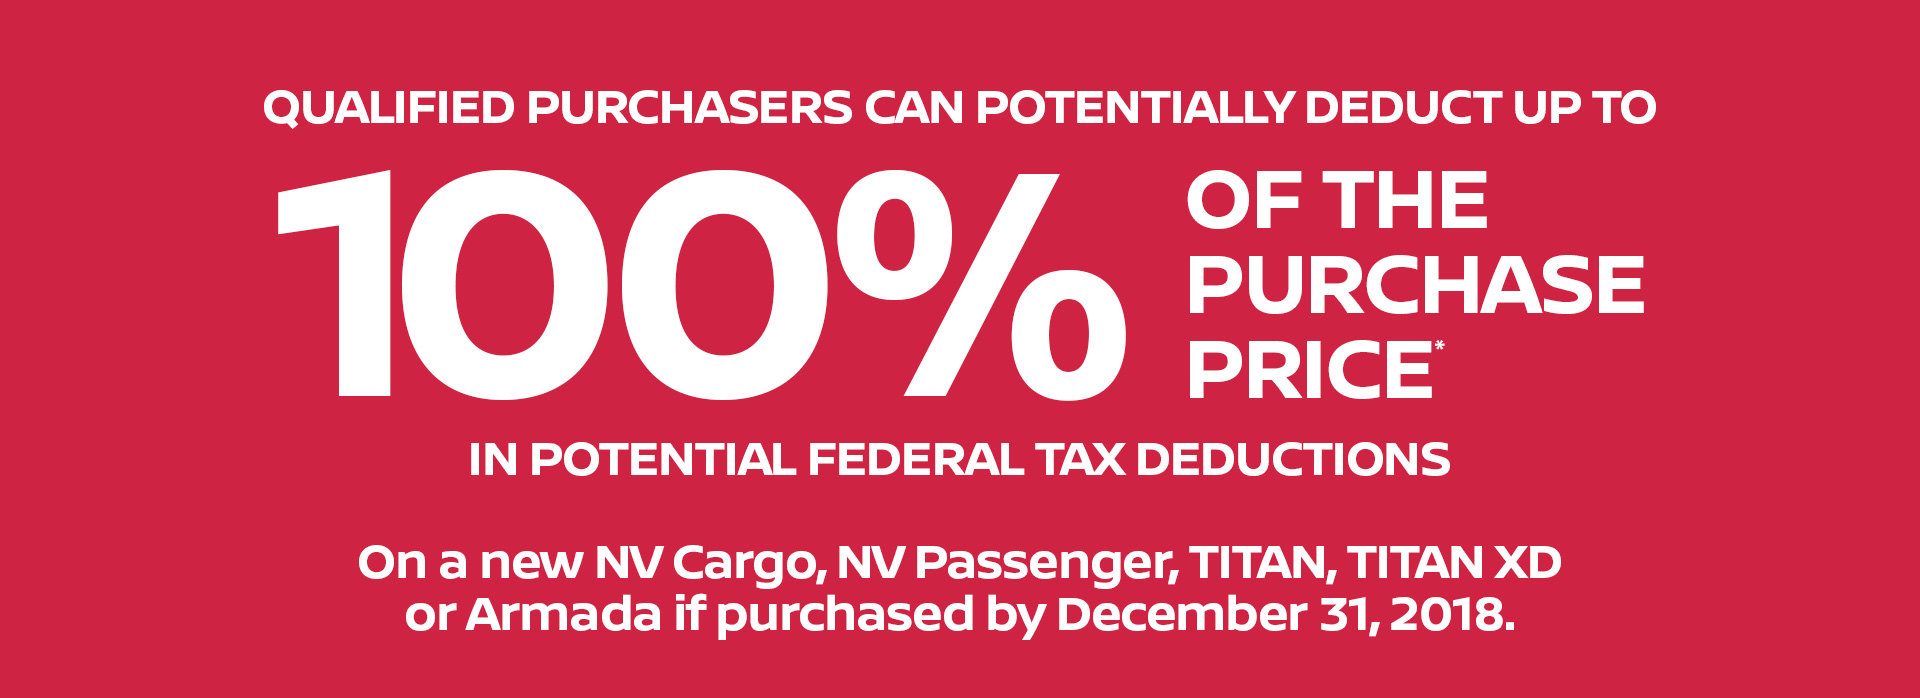 QUALIFIED PURCHASERS CAN POTENTIALLY DEDUCT UP TO 100% OF THE PURCHASE PRICE* IN POTENTIAL FEDERAL TAX DEDCUCTIONSOn a new NV Cargo, NV Passenger, TITAN, TITAN XD or Armada if purchased by December 31, 2018.